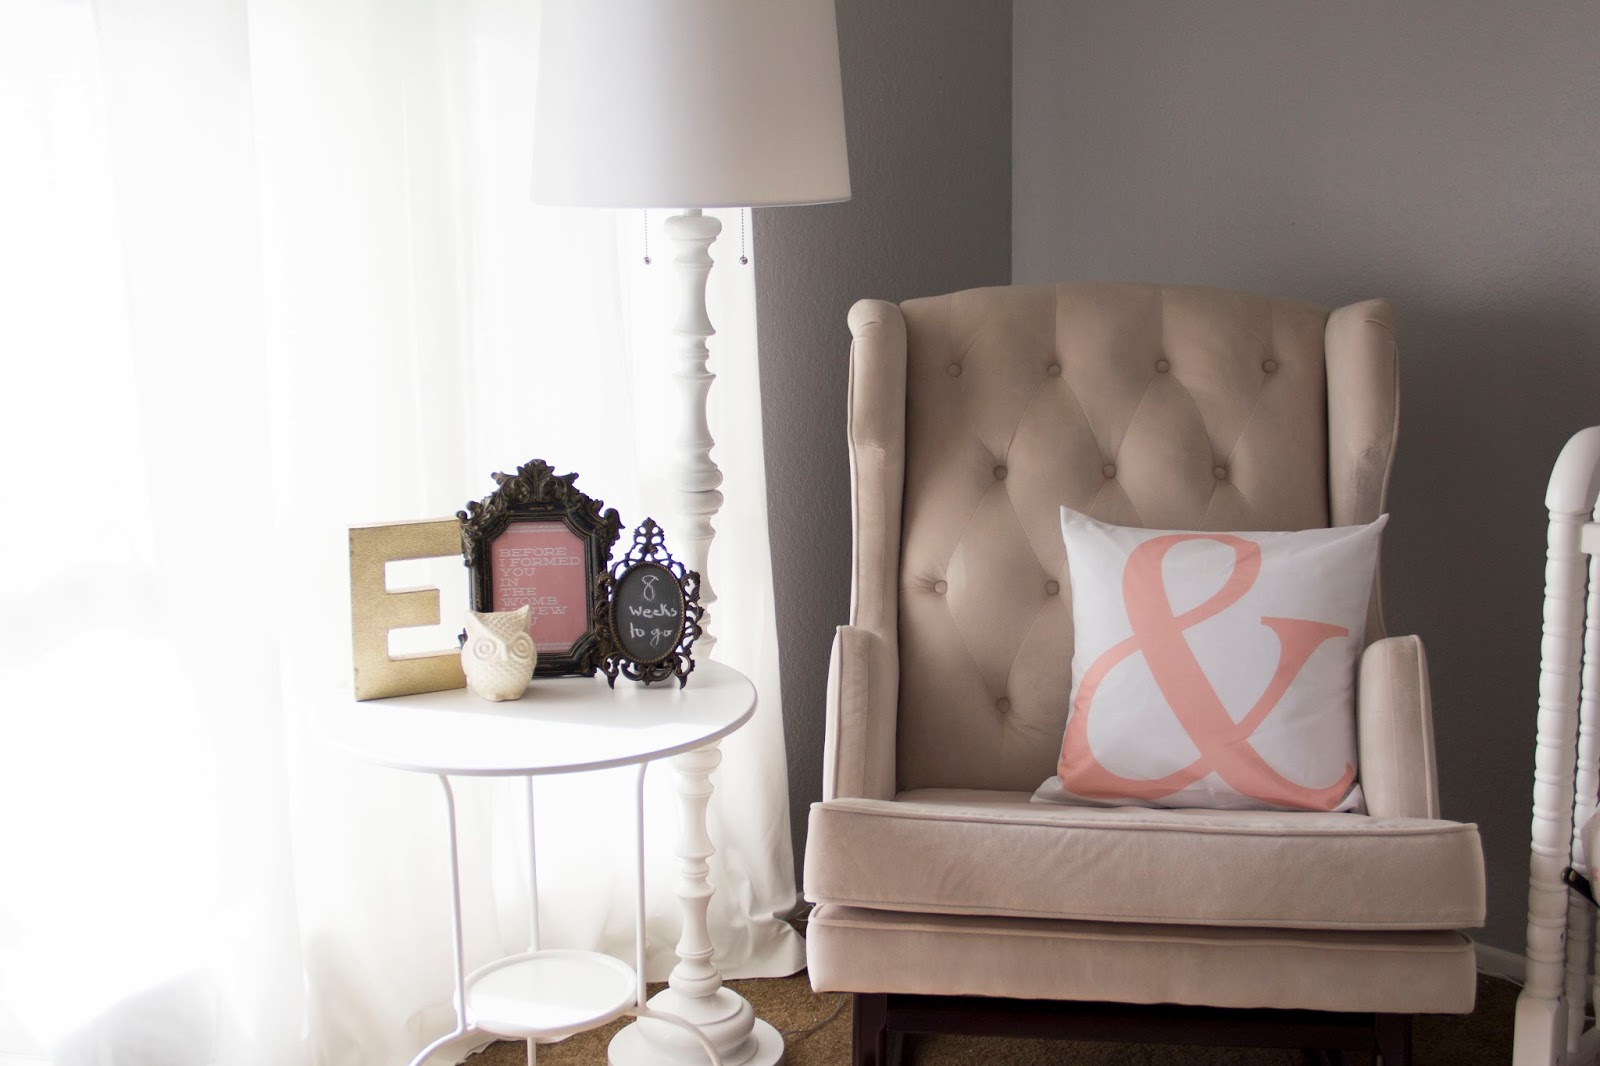 Etonnant Simple White Round Top Nursery Side Table With Some Antique Picture Frames  A Floor Lamp In